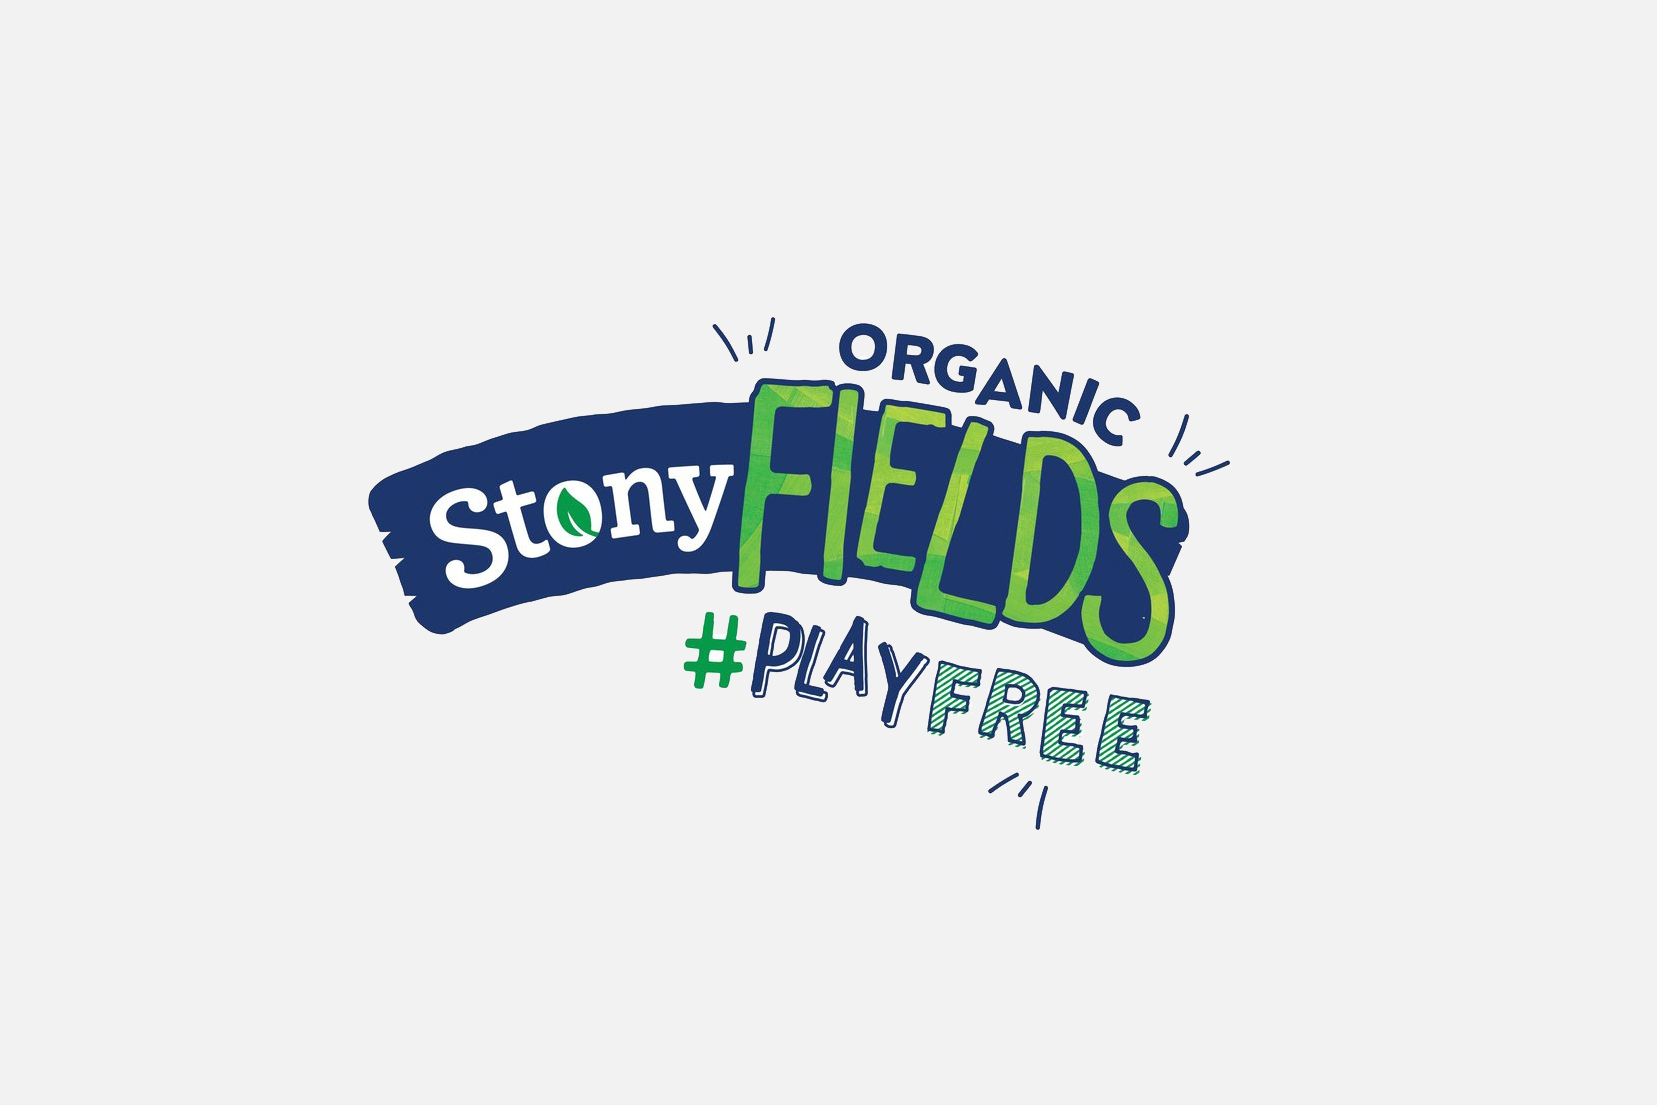 Herbicide Free UC Receives Grant from Stonyfield Organics - Celebrating Earth Day, Stonyfield Organic Furthers Mission To Remove Harmful Chemicals Where Children Play; Announces One Year Milestones Of #PlayFree Initiative